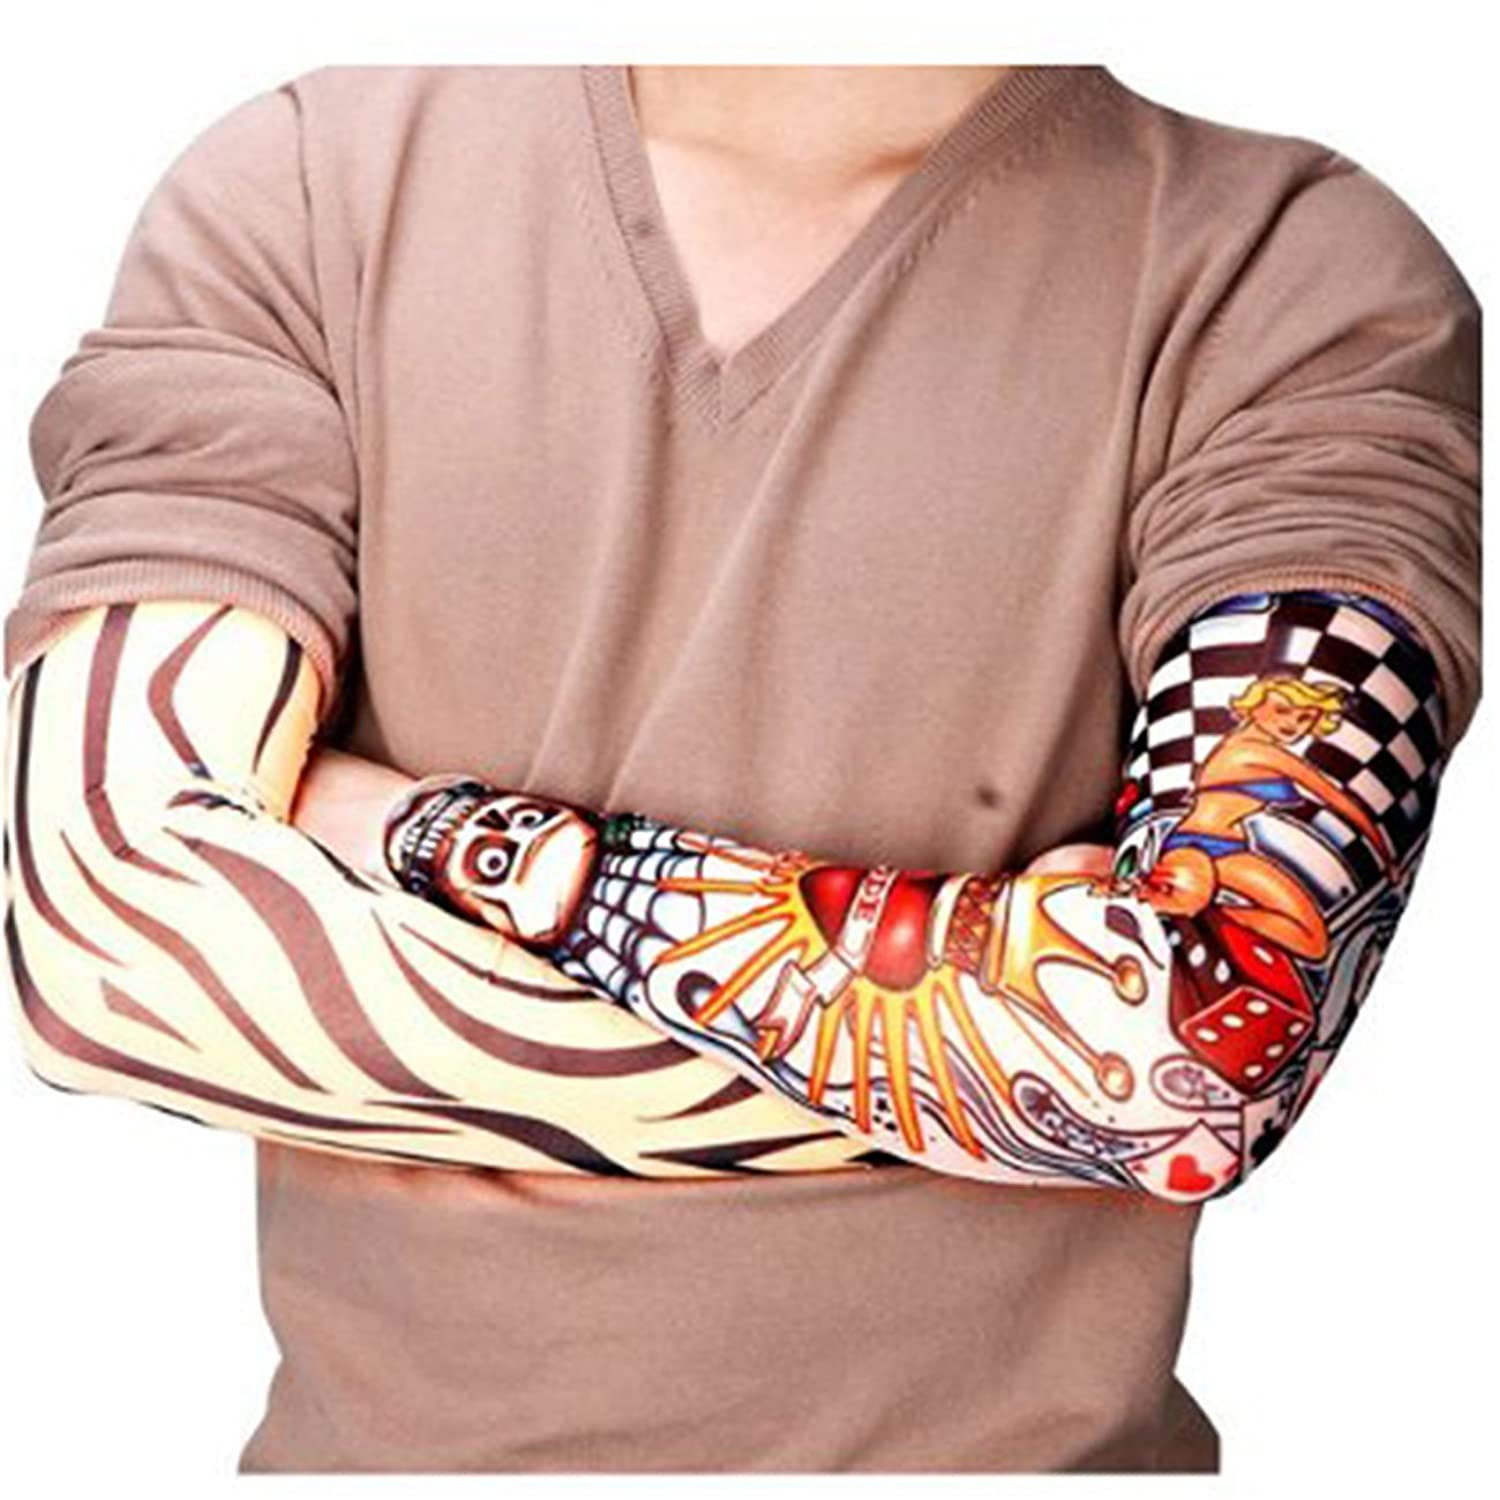 10 Pcs Tattoo Sleeves Assorted/Random Styles Halloween Party Costume Accessory